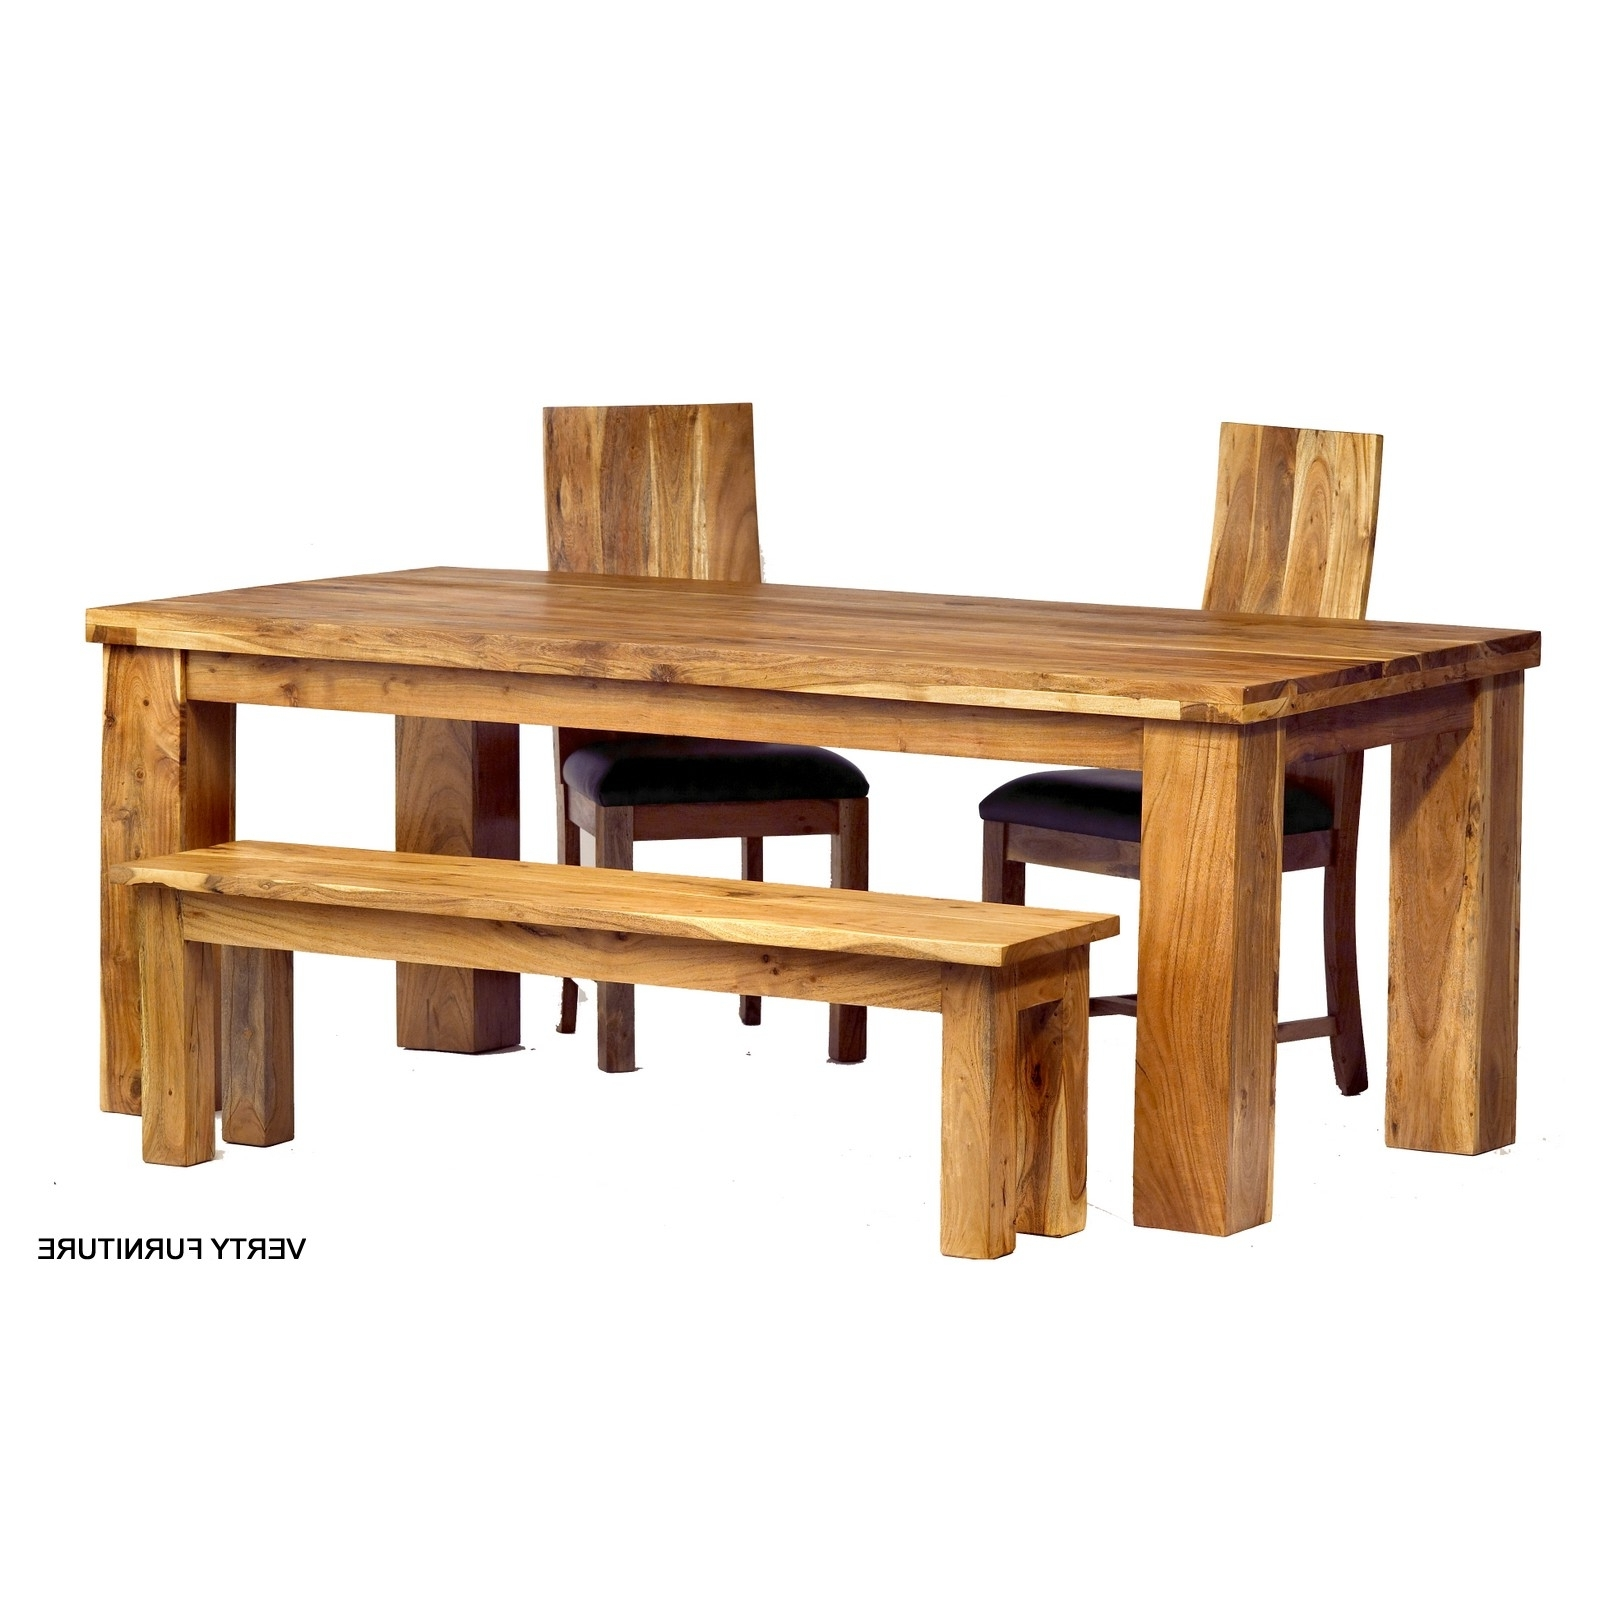 Acacia Dining Table – Large With Bench And 4 Chairs – Verty Indian Throughout Well Liked Acacia Dining Tables (View 20 of 25)